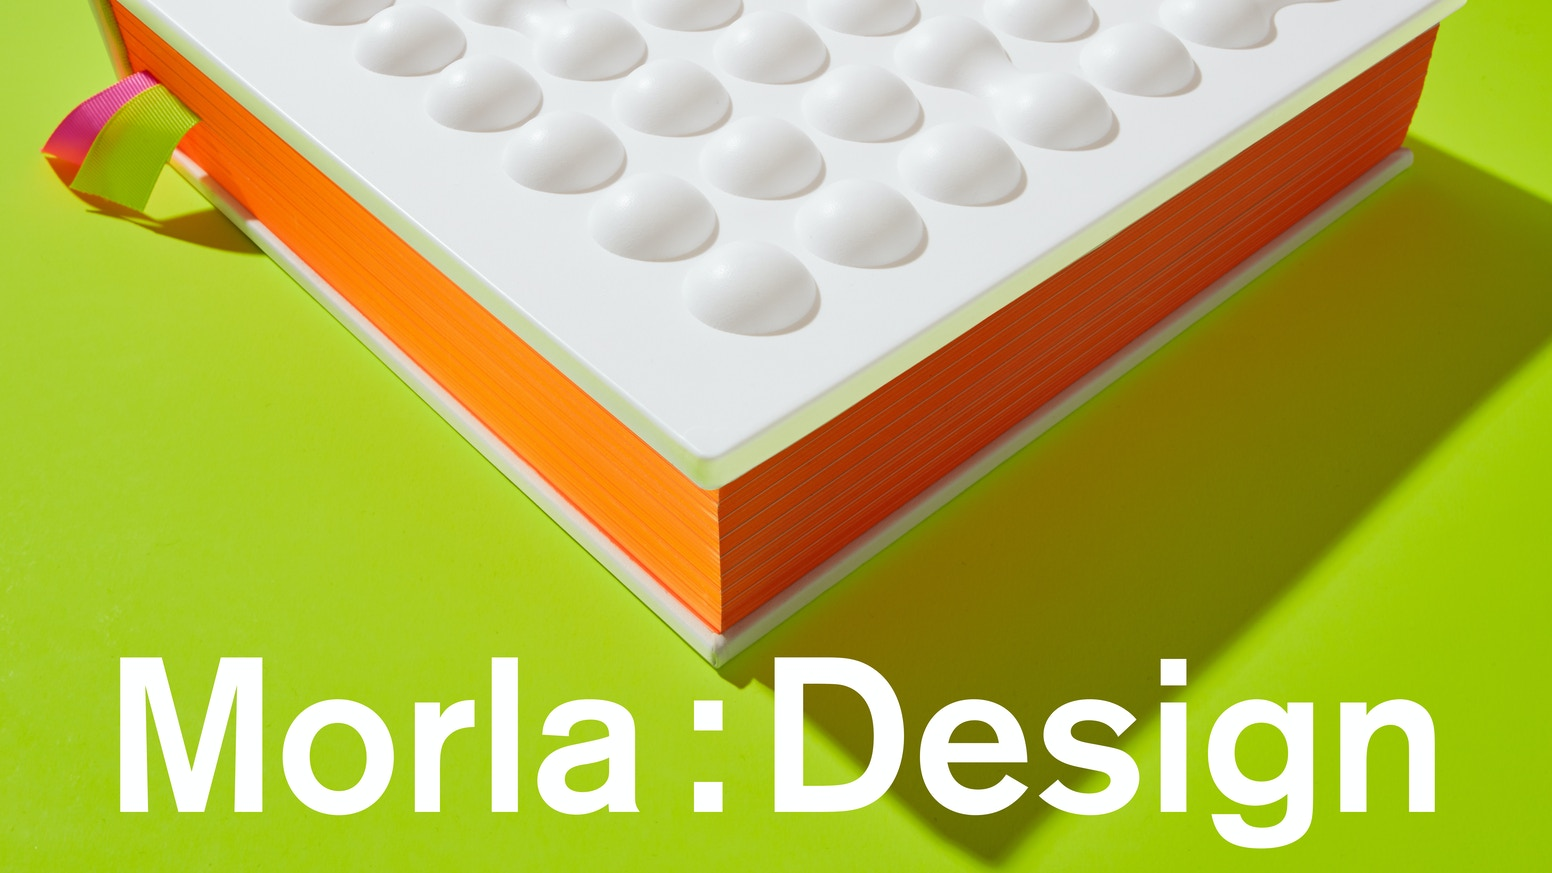 A brilliant, bold, and sensationally produced book on the work of Jennifer Morla, a luminary of contemporary design.